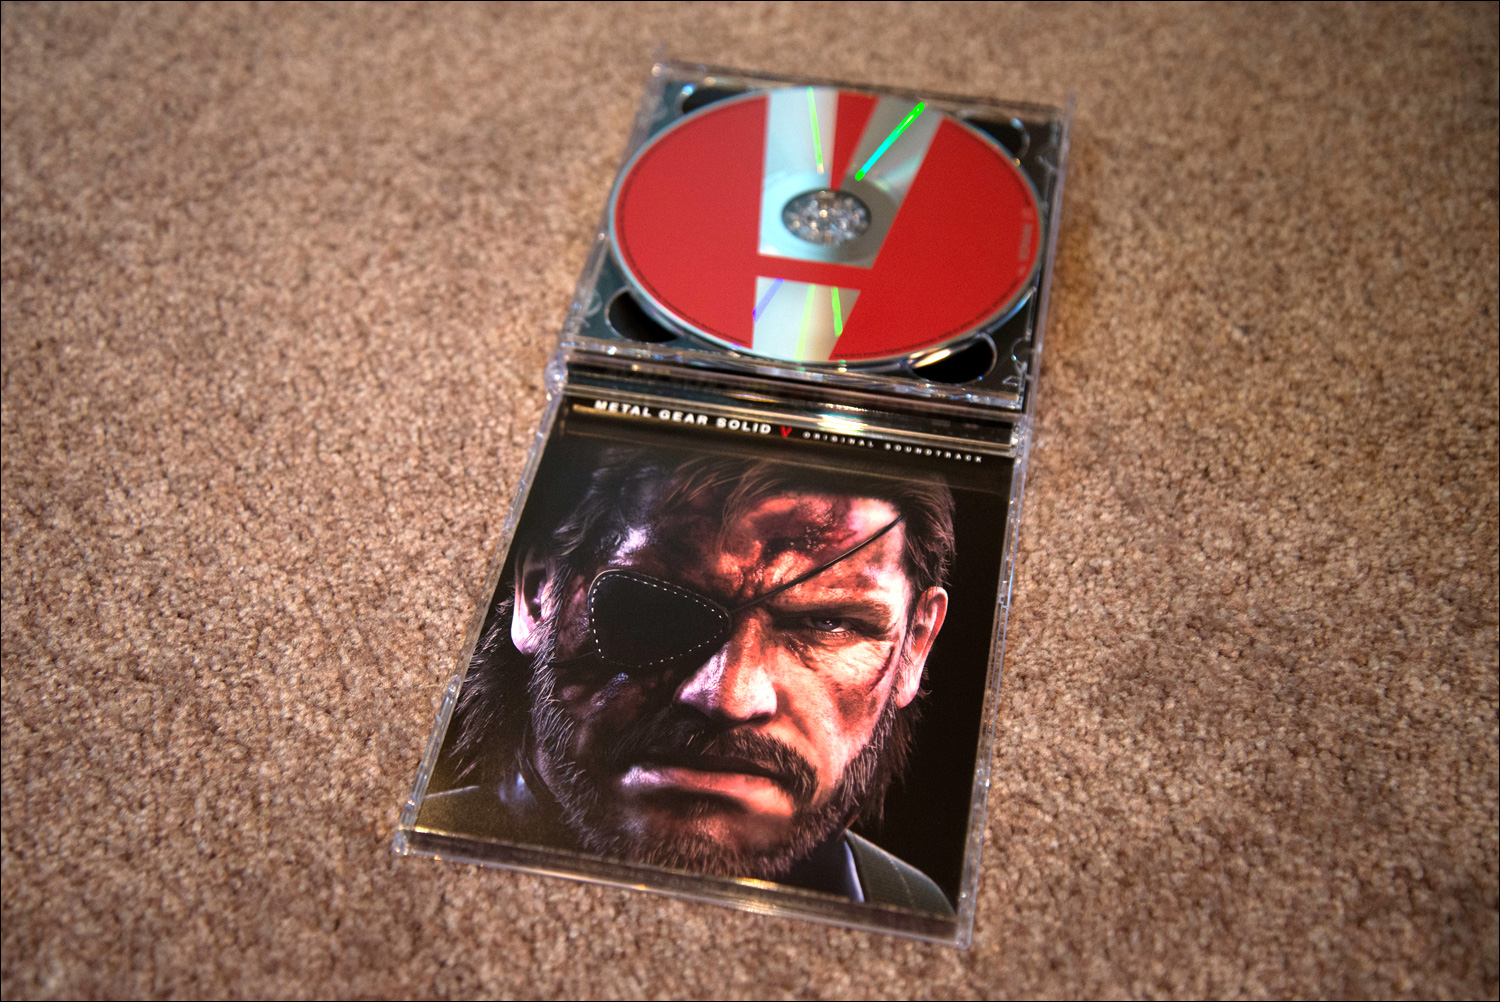 Metal-Gear-Solid-V-Original-Soundtrack-Case-Open-2